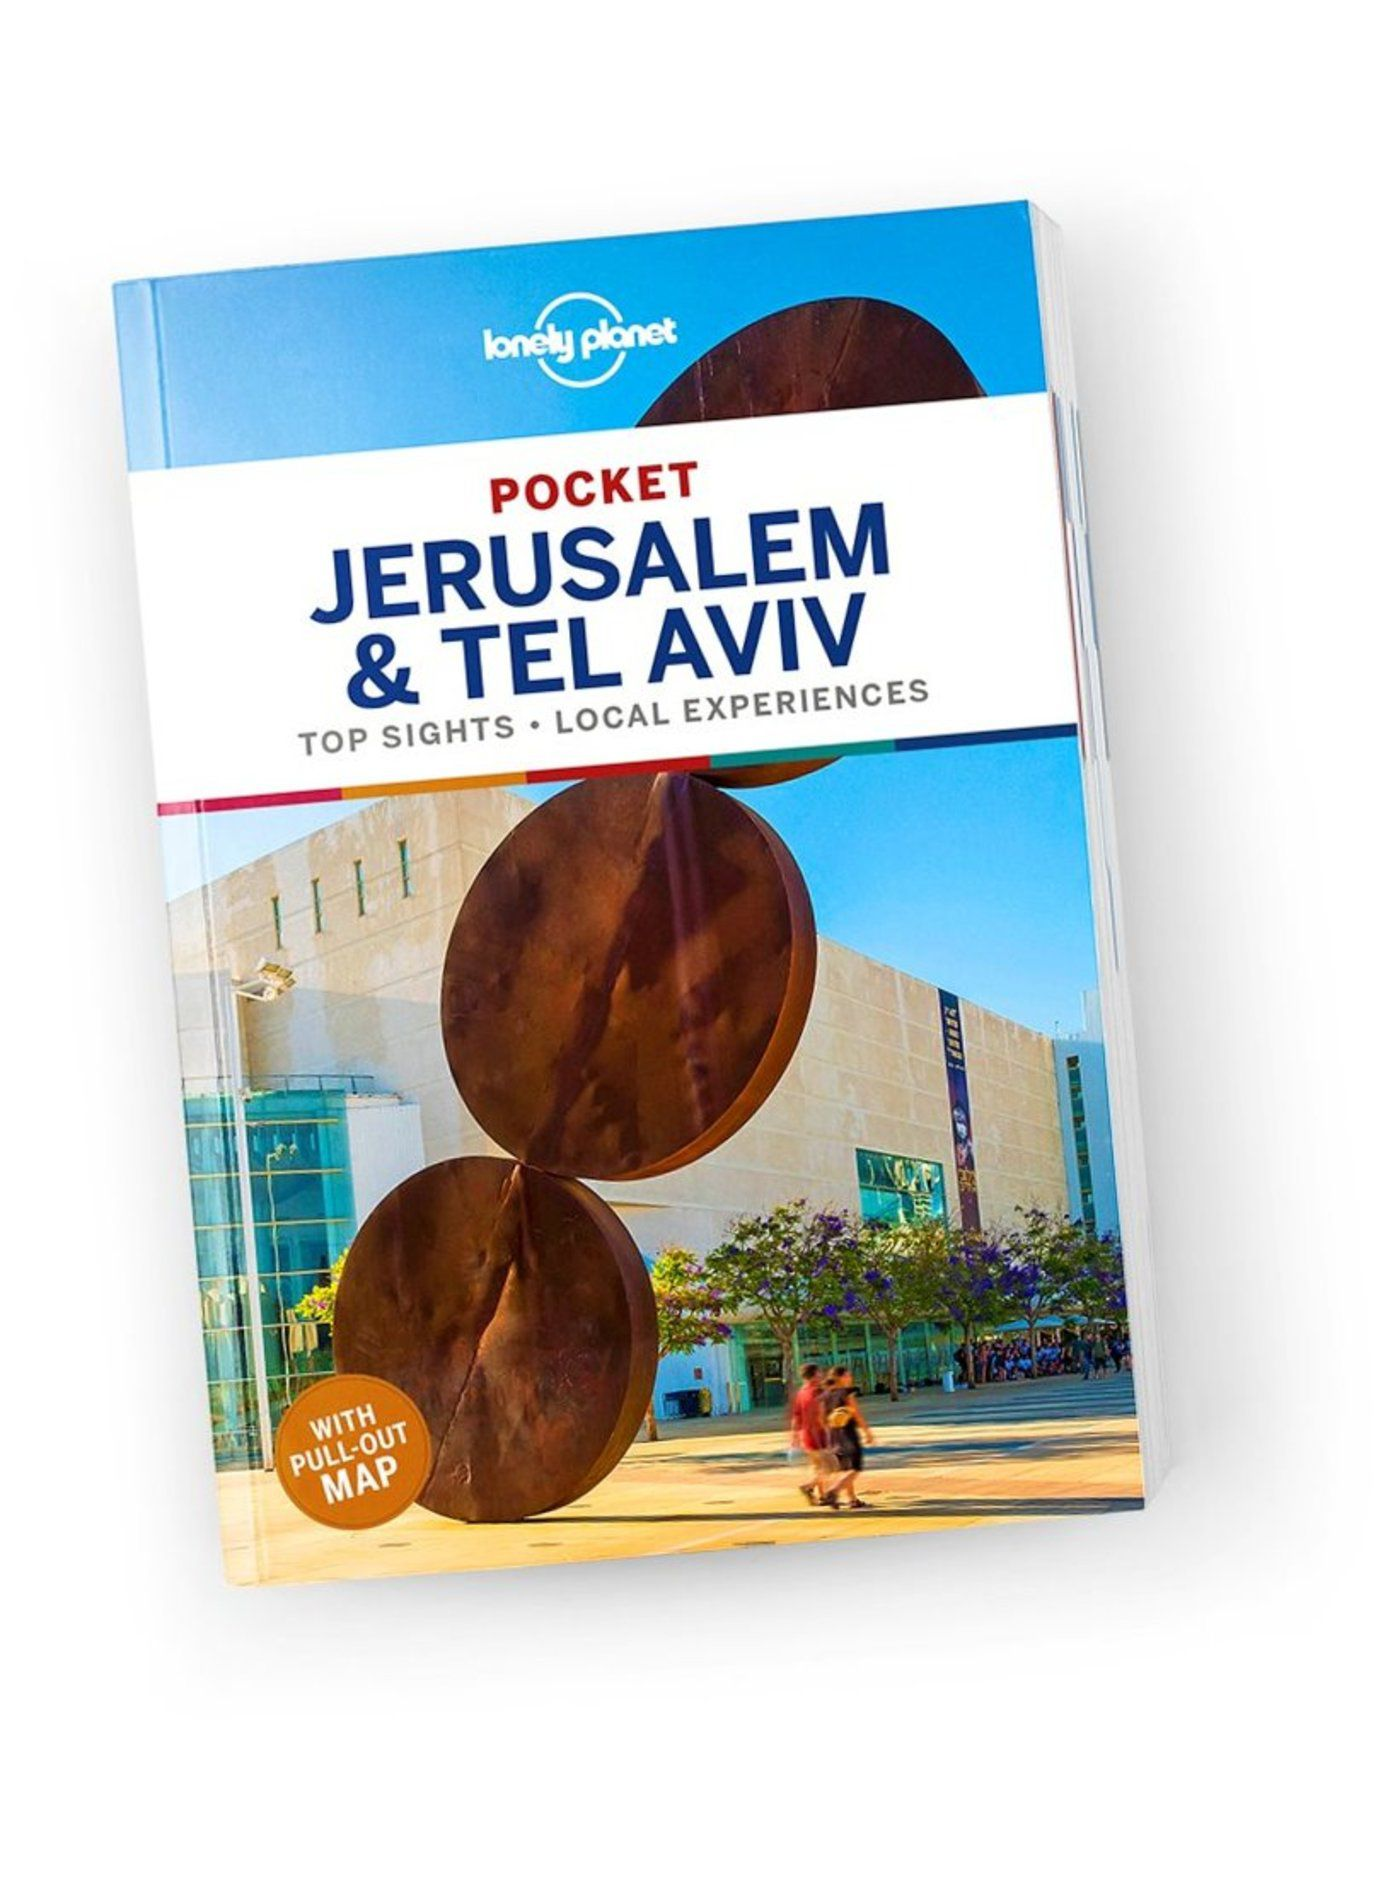 Pocket Jerusalem & Tel Aviv city guide